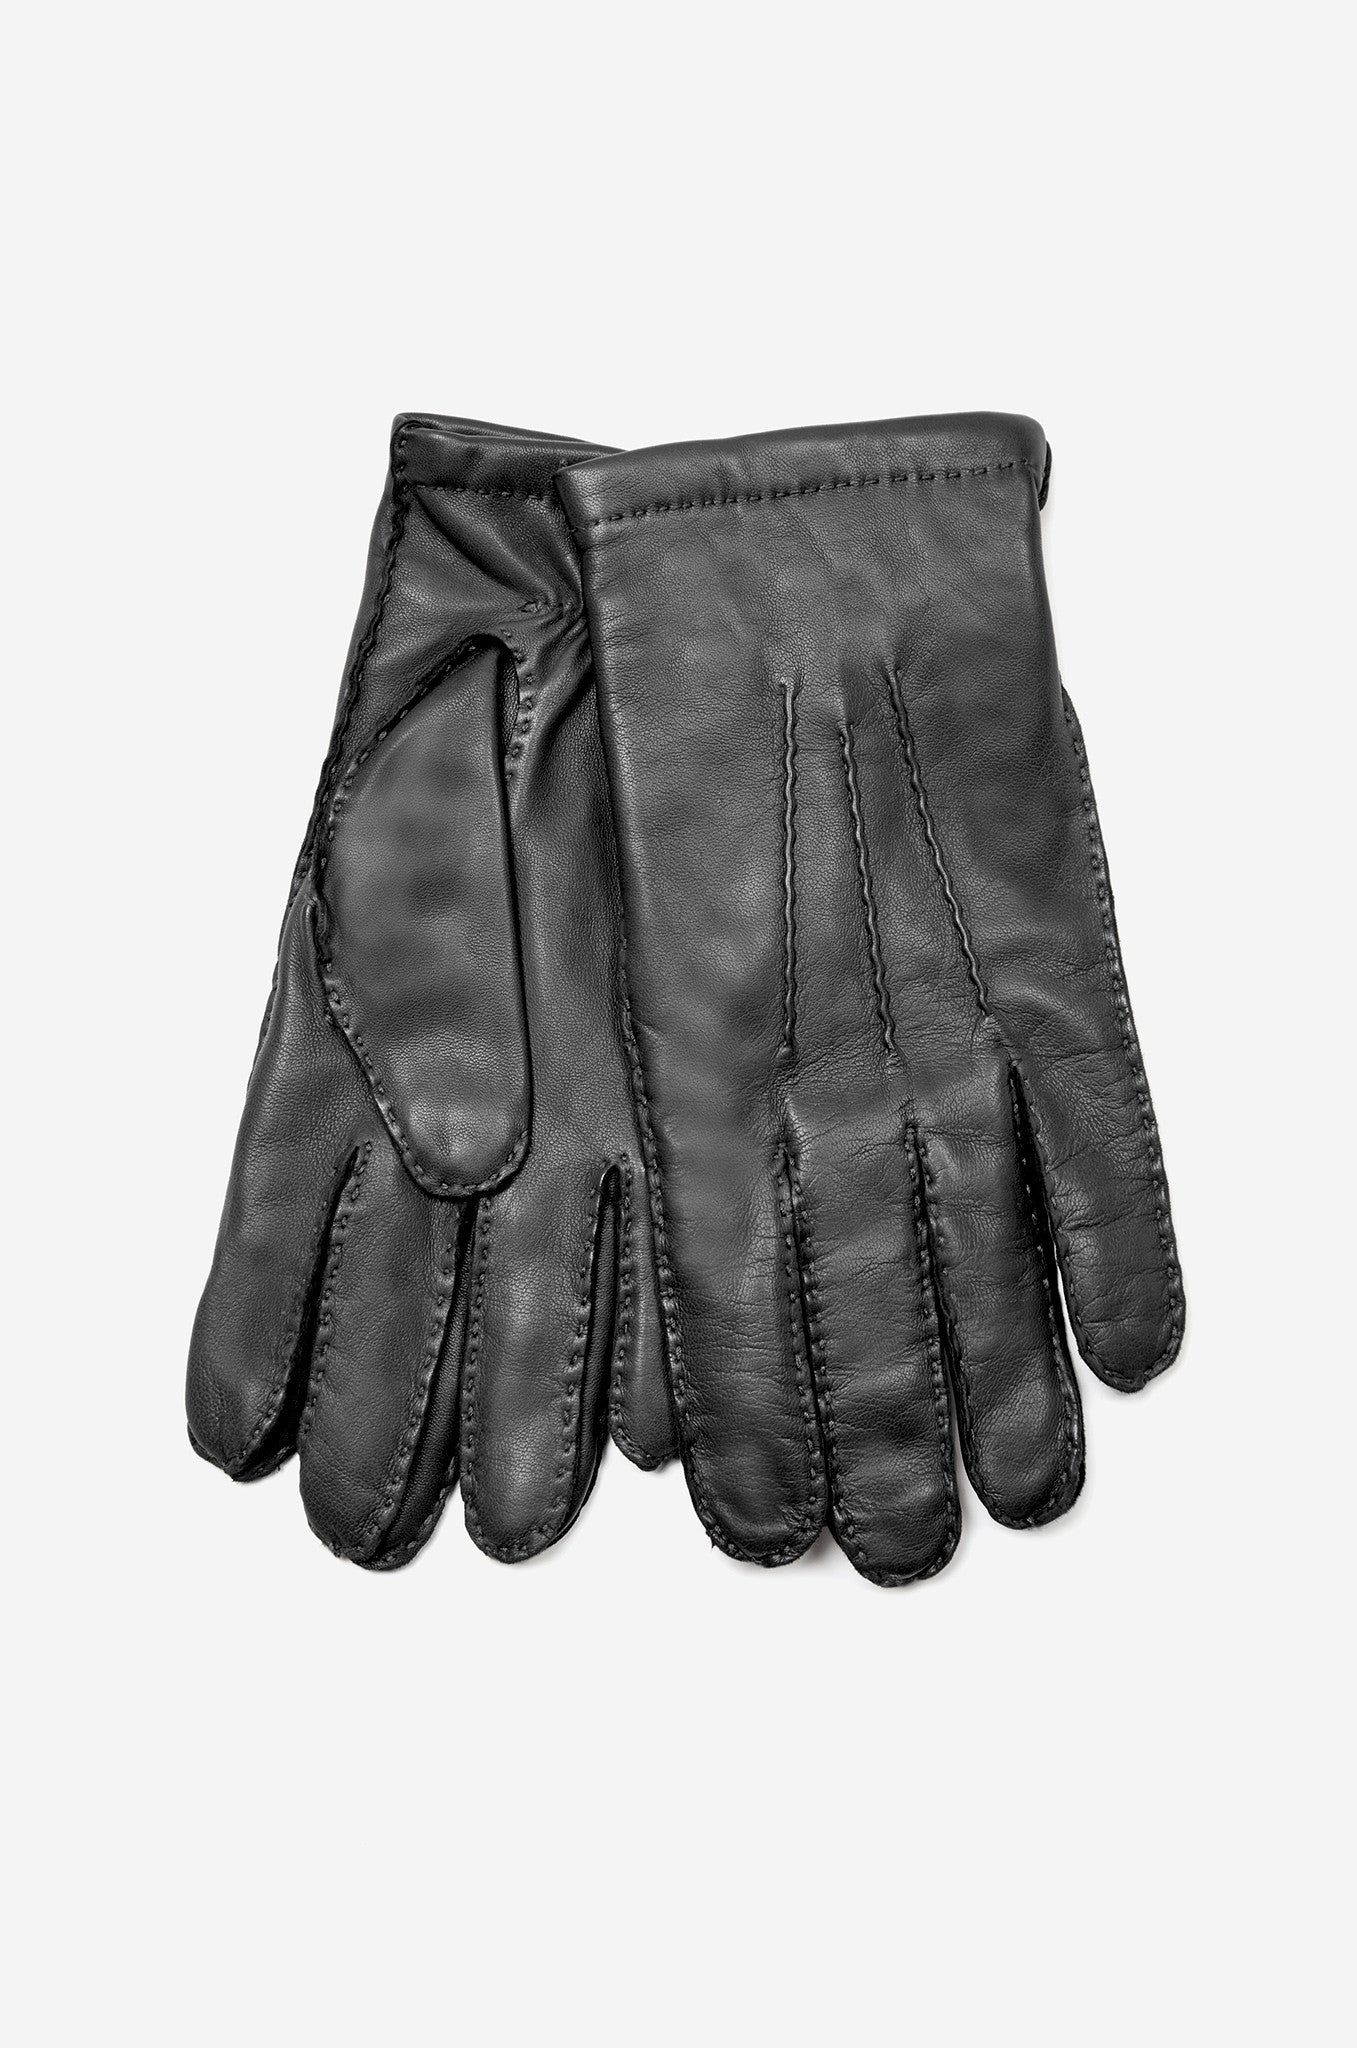 Mens leather gloves grey - Men S Leather Gloves With Cashmere Lining Realm Empire British Menswear